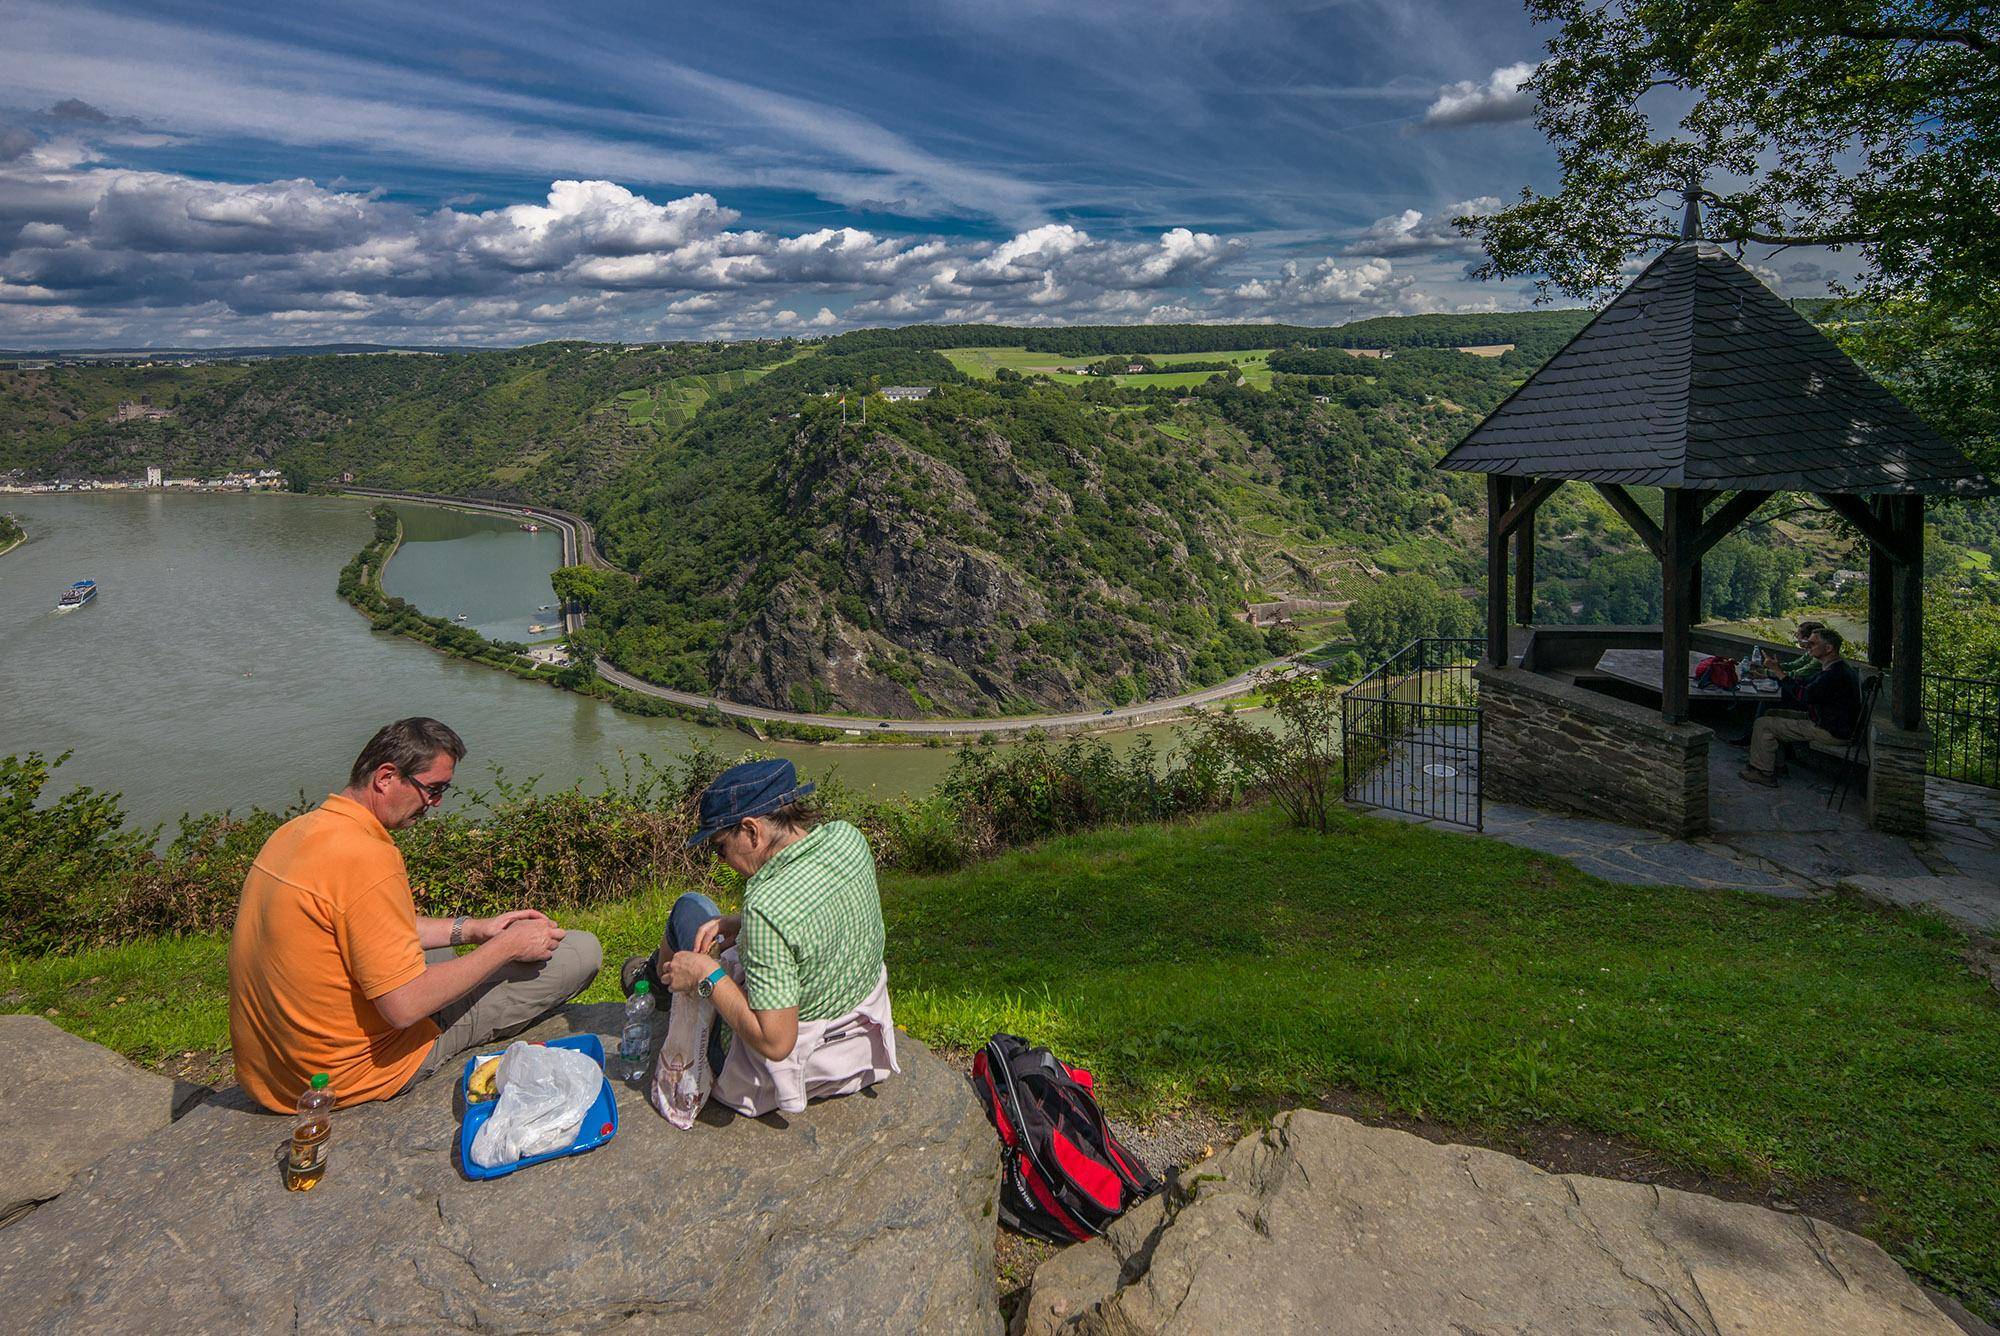 A beautiful view of Loreley Rock from the rest stop called Maria Ruh at the RheinBurgenWeg. – © C. H. Piel / Rhein-Touristik Tal der Loreley